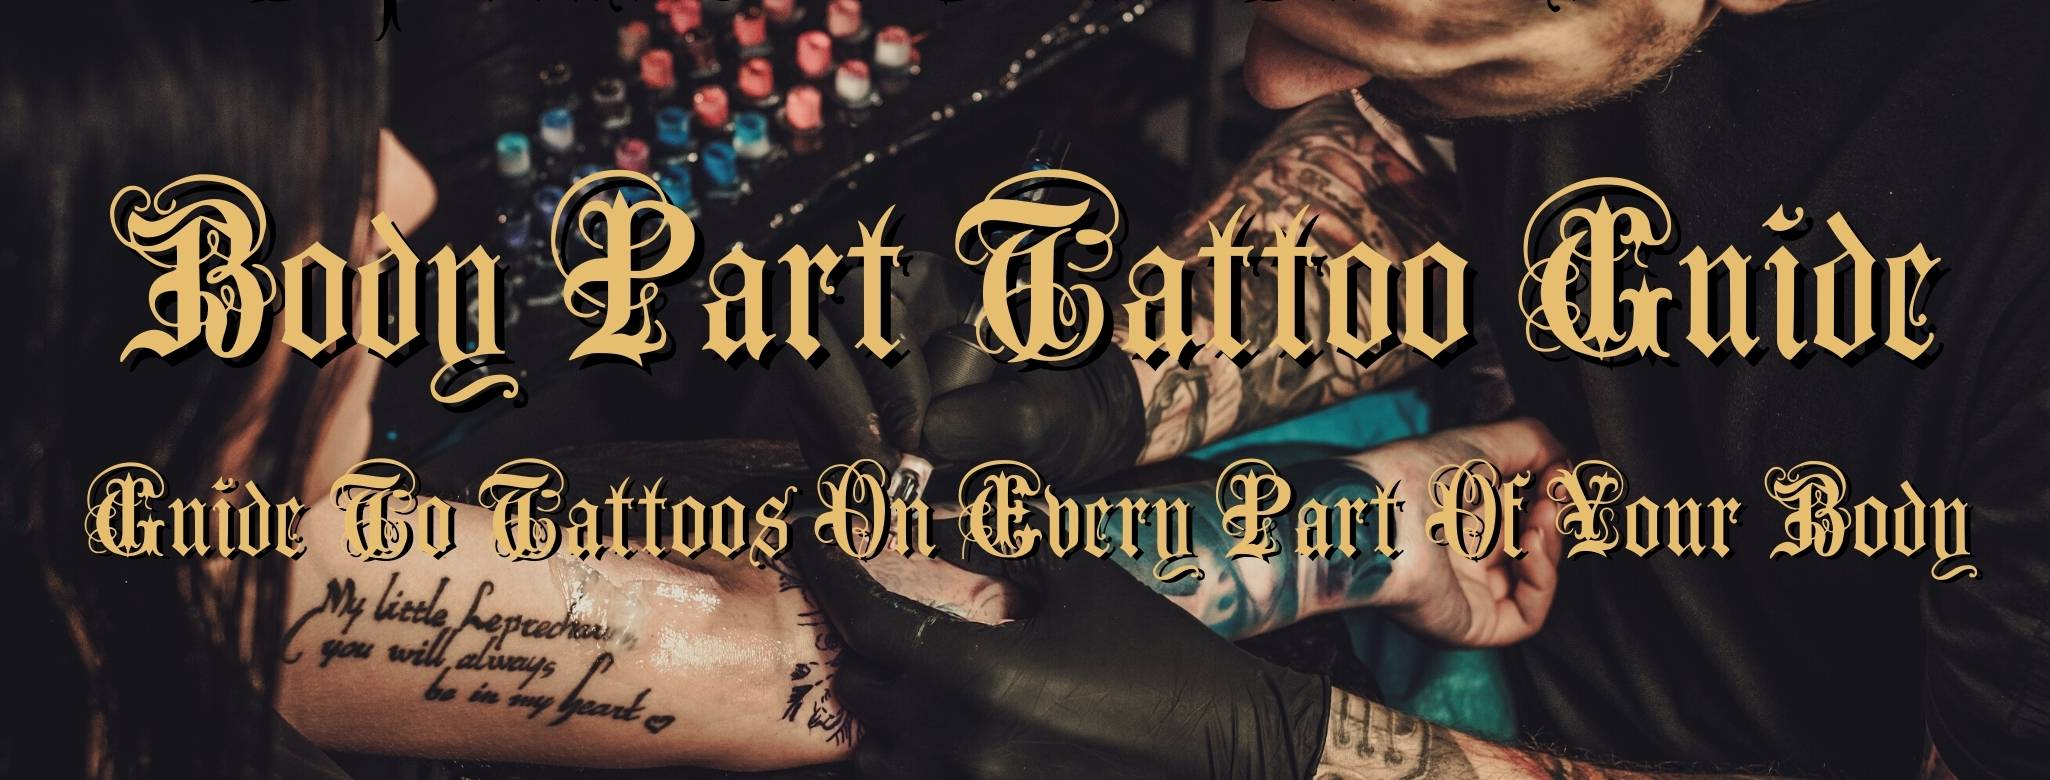 The Body Part Tattoo Guide: A Comprehensive Guide To Tattoos On Every Part Of Your Body